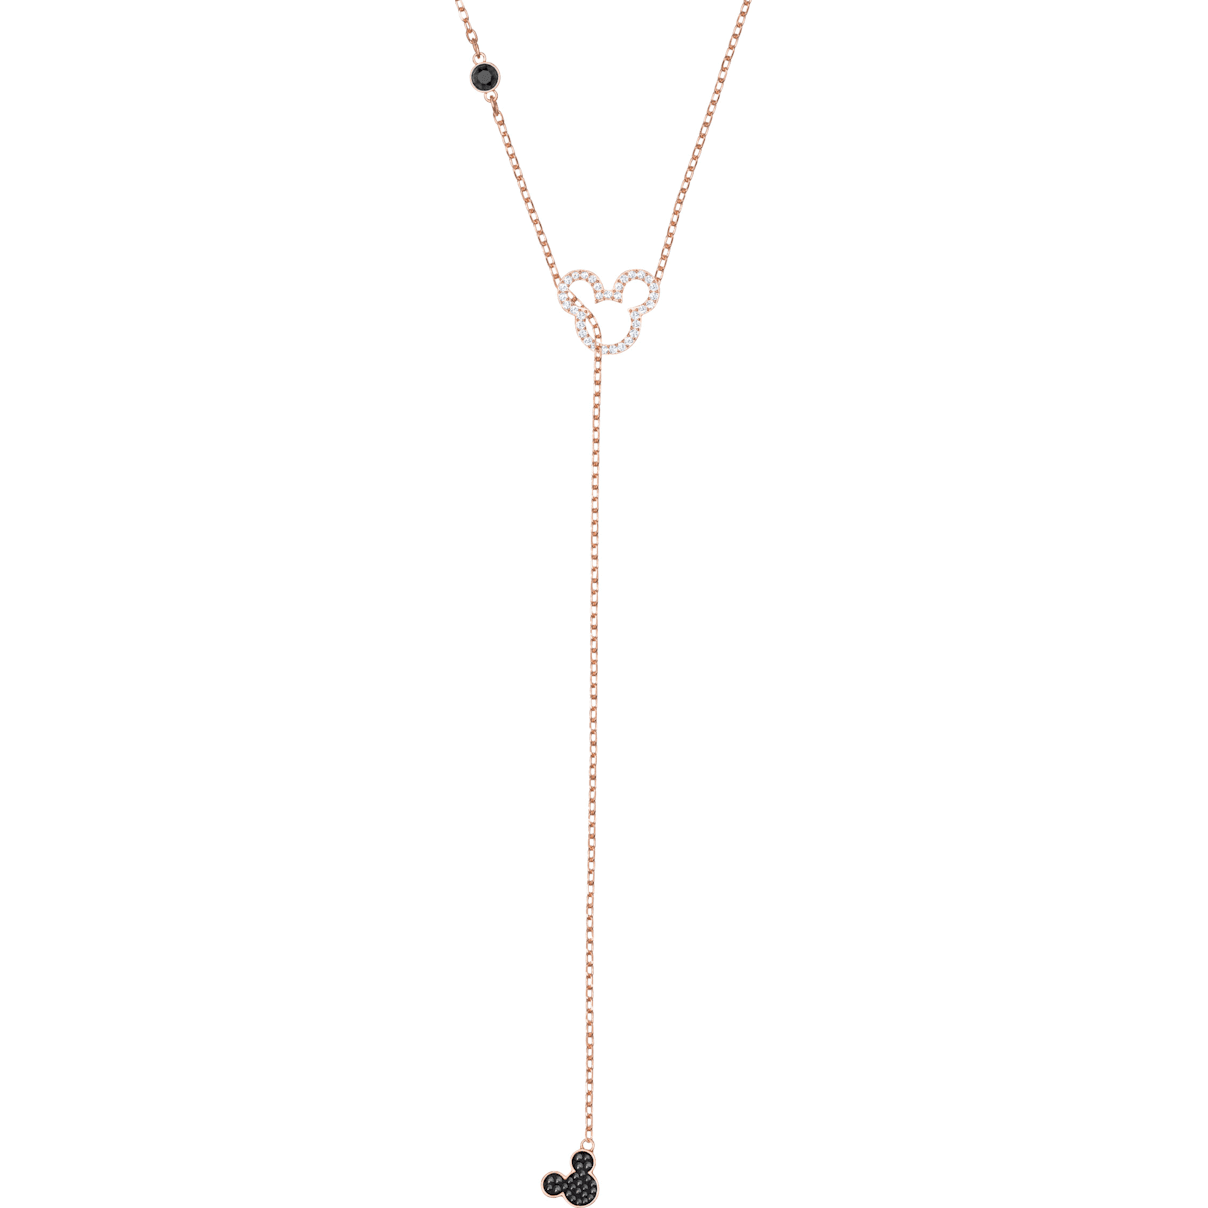 Swarovski Mickey & Minnie Y Necklace, Multi-colored, Rose-gold tone plated